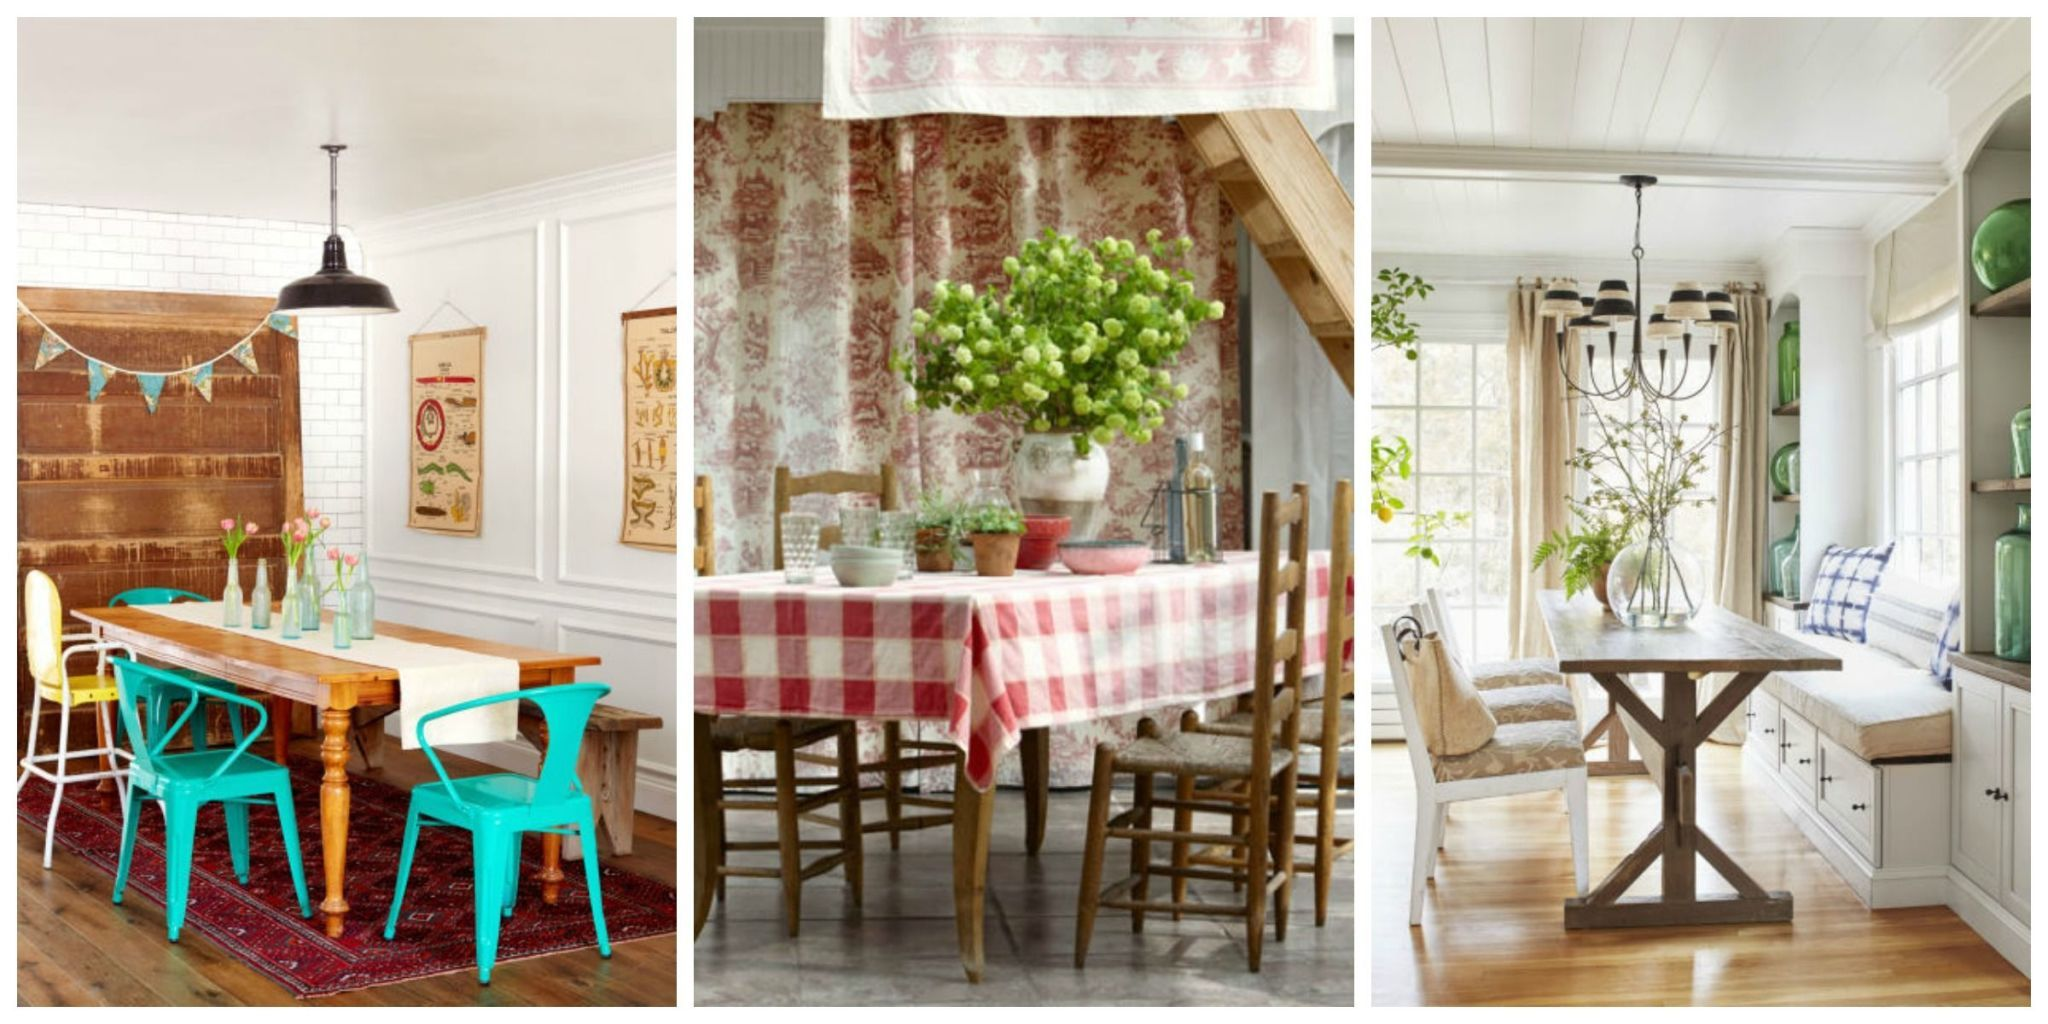 From Floral Themes To Vintage Furniture, Our Dining Room Design Guide Will  Help You Transform Your Dining Space In No Time. Plus, Makeover Your  Kitchen, ...